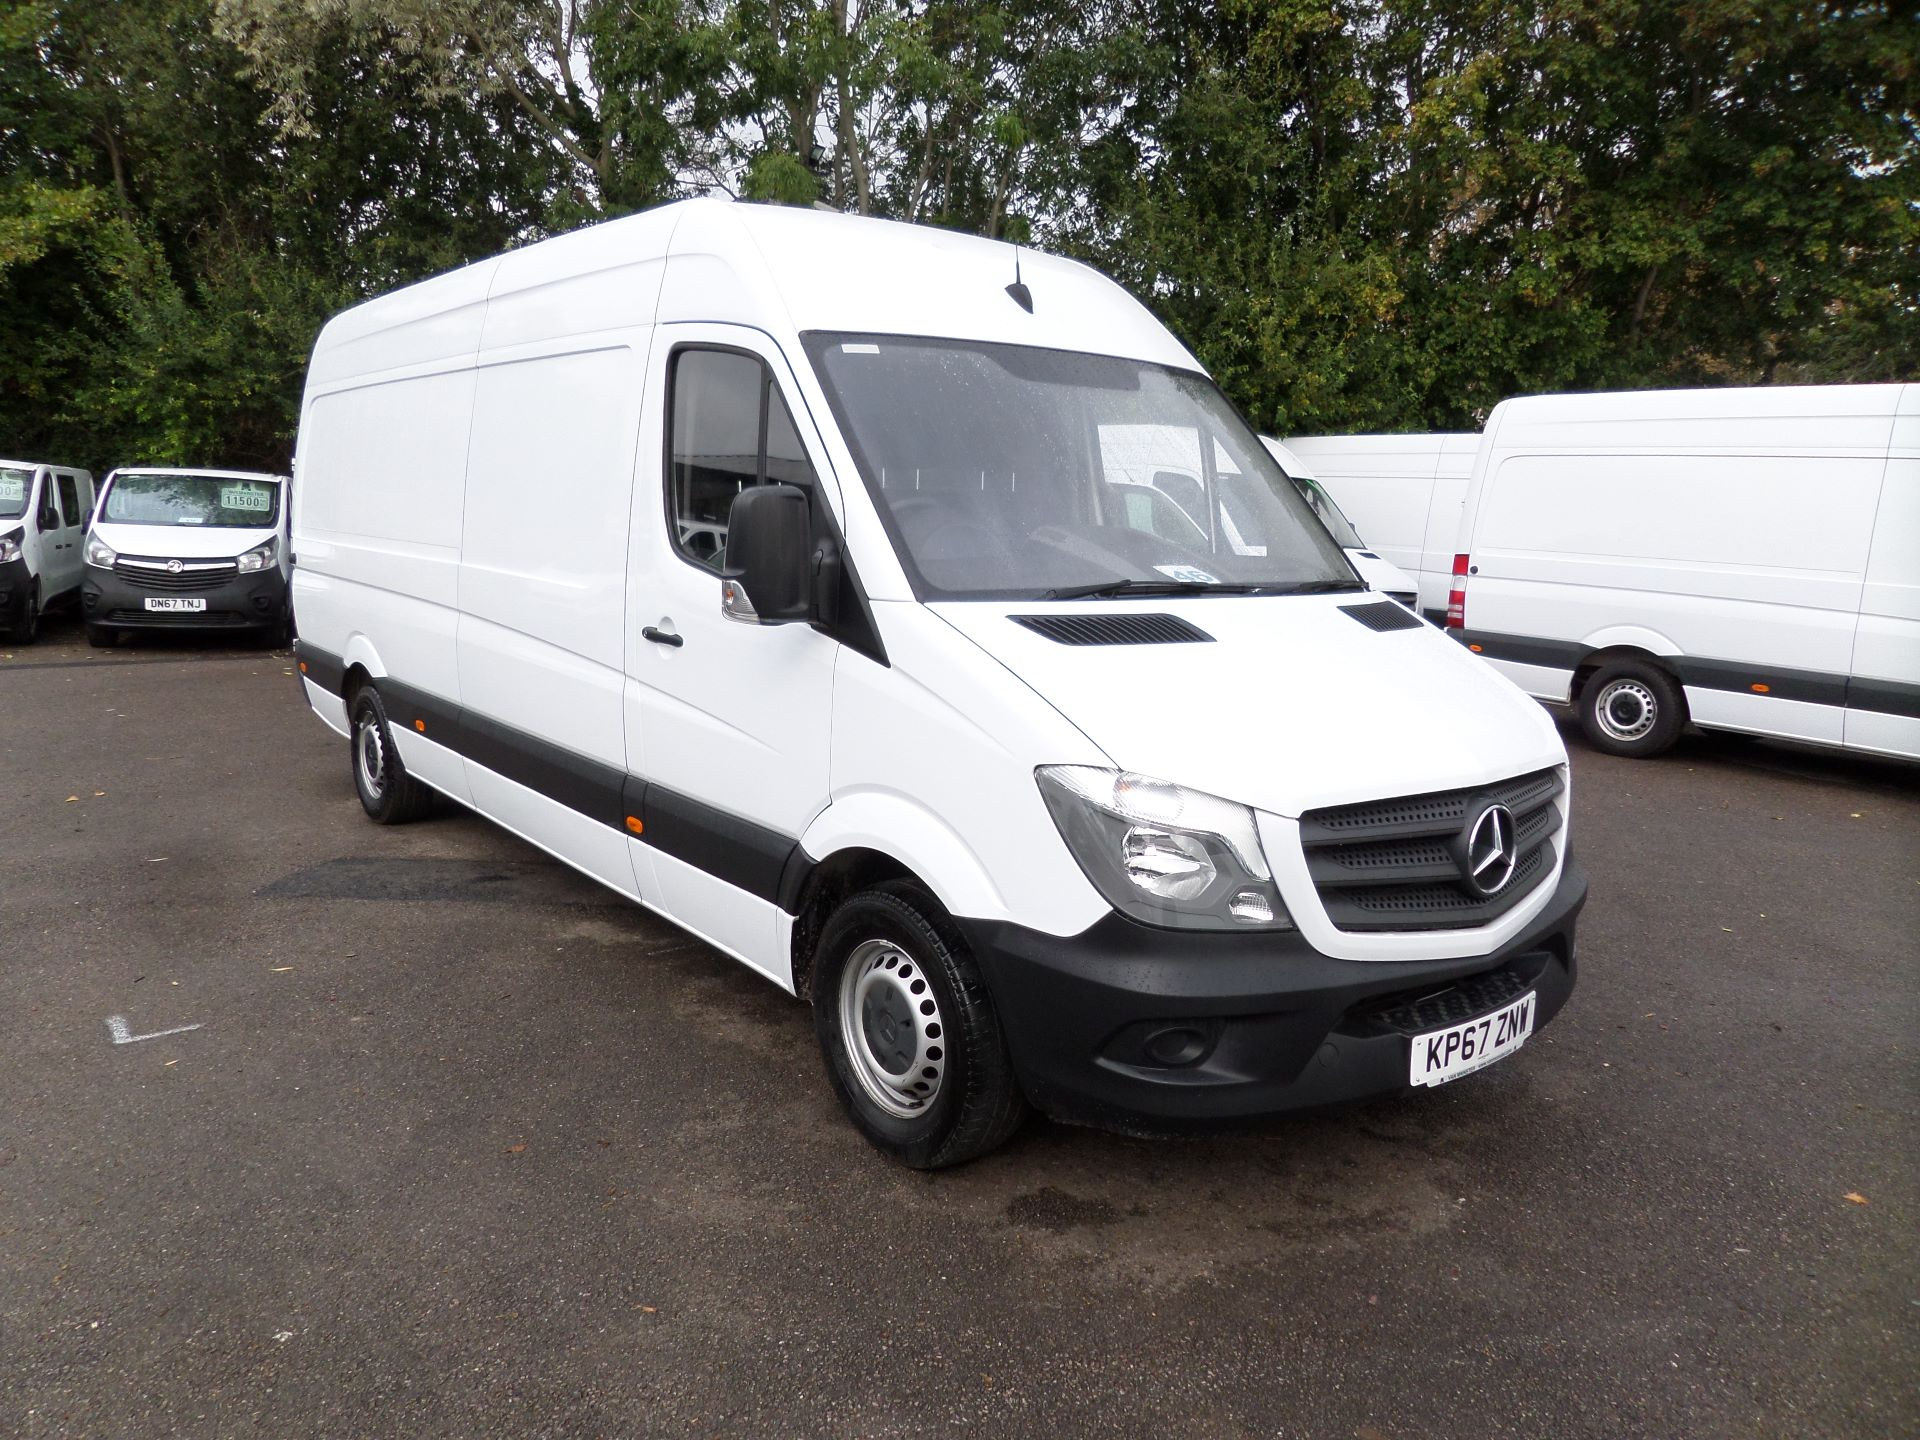 2017 Mercedes-Benz Sprinter 3.5T High Roof Van (KP67ZNW)